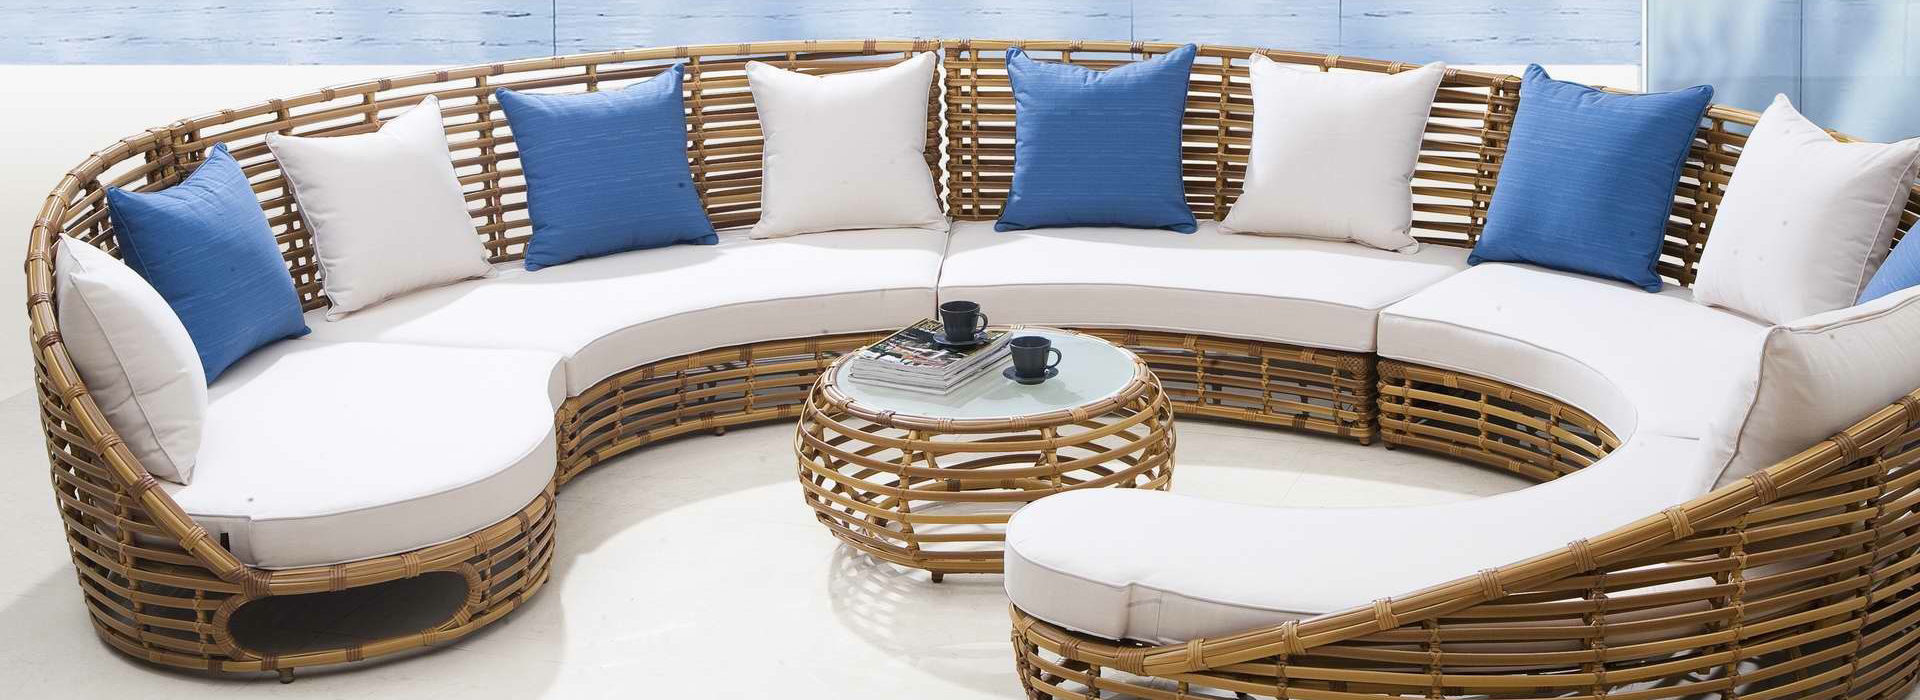 Amazing patio furniture starts with an idea, then add cream and blue toss pillows to it.